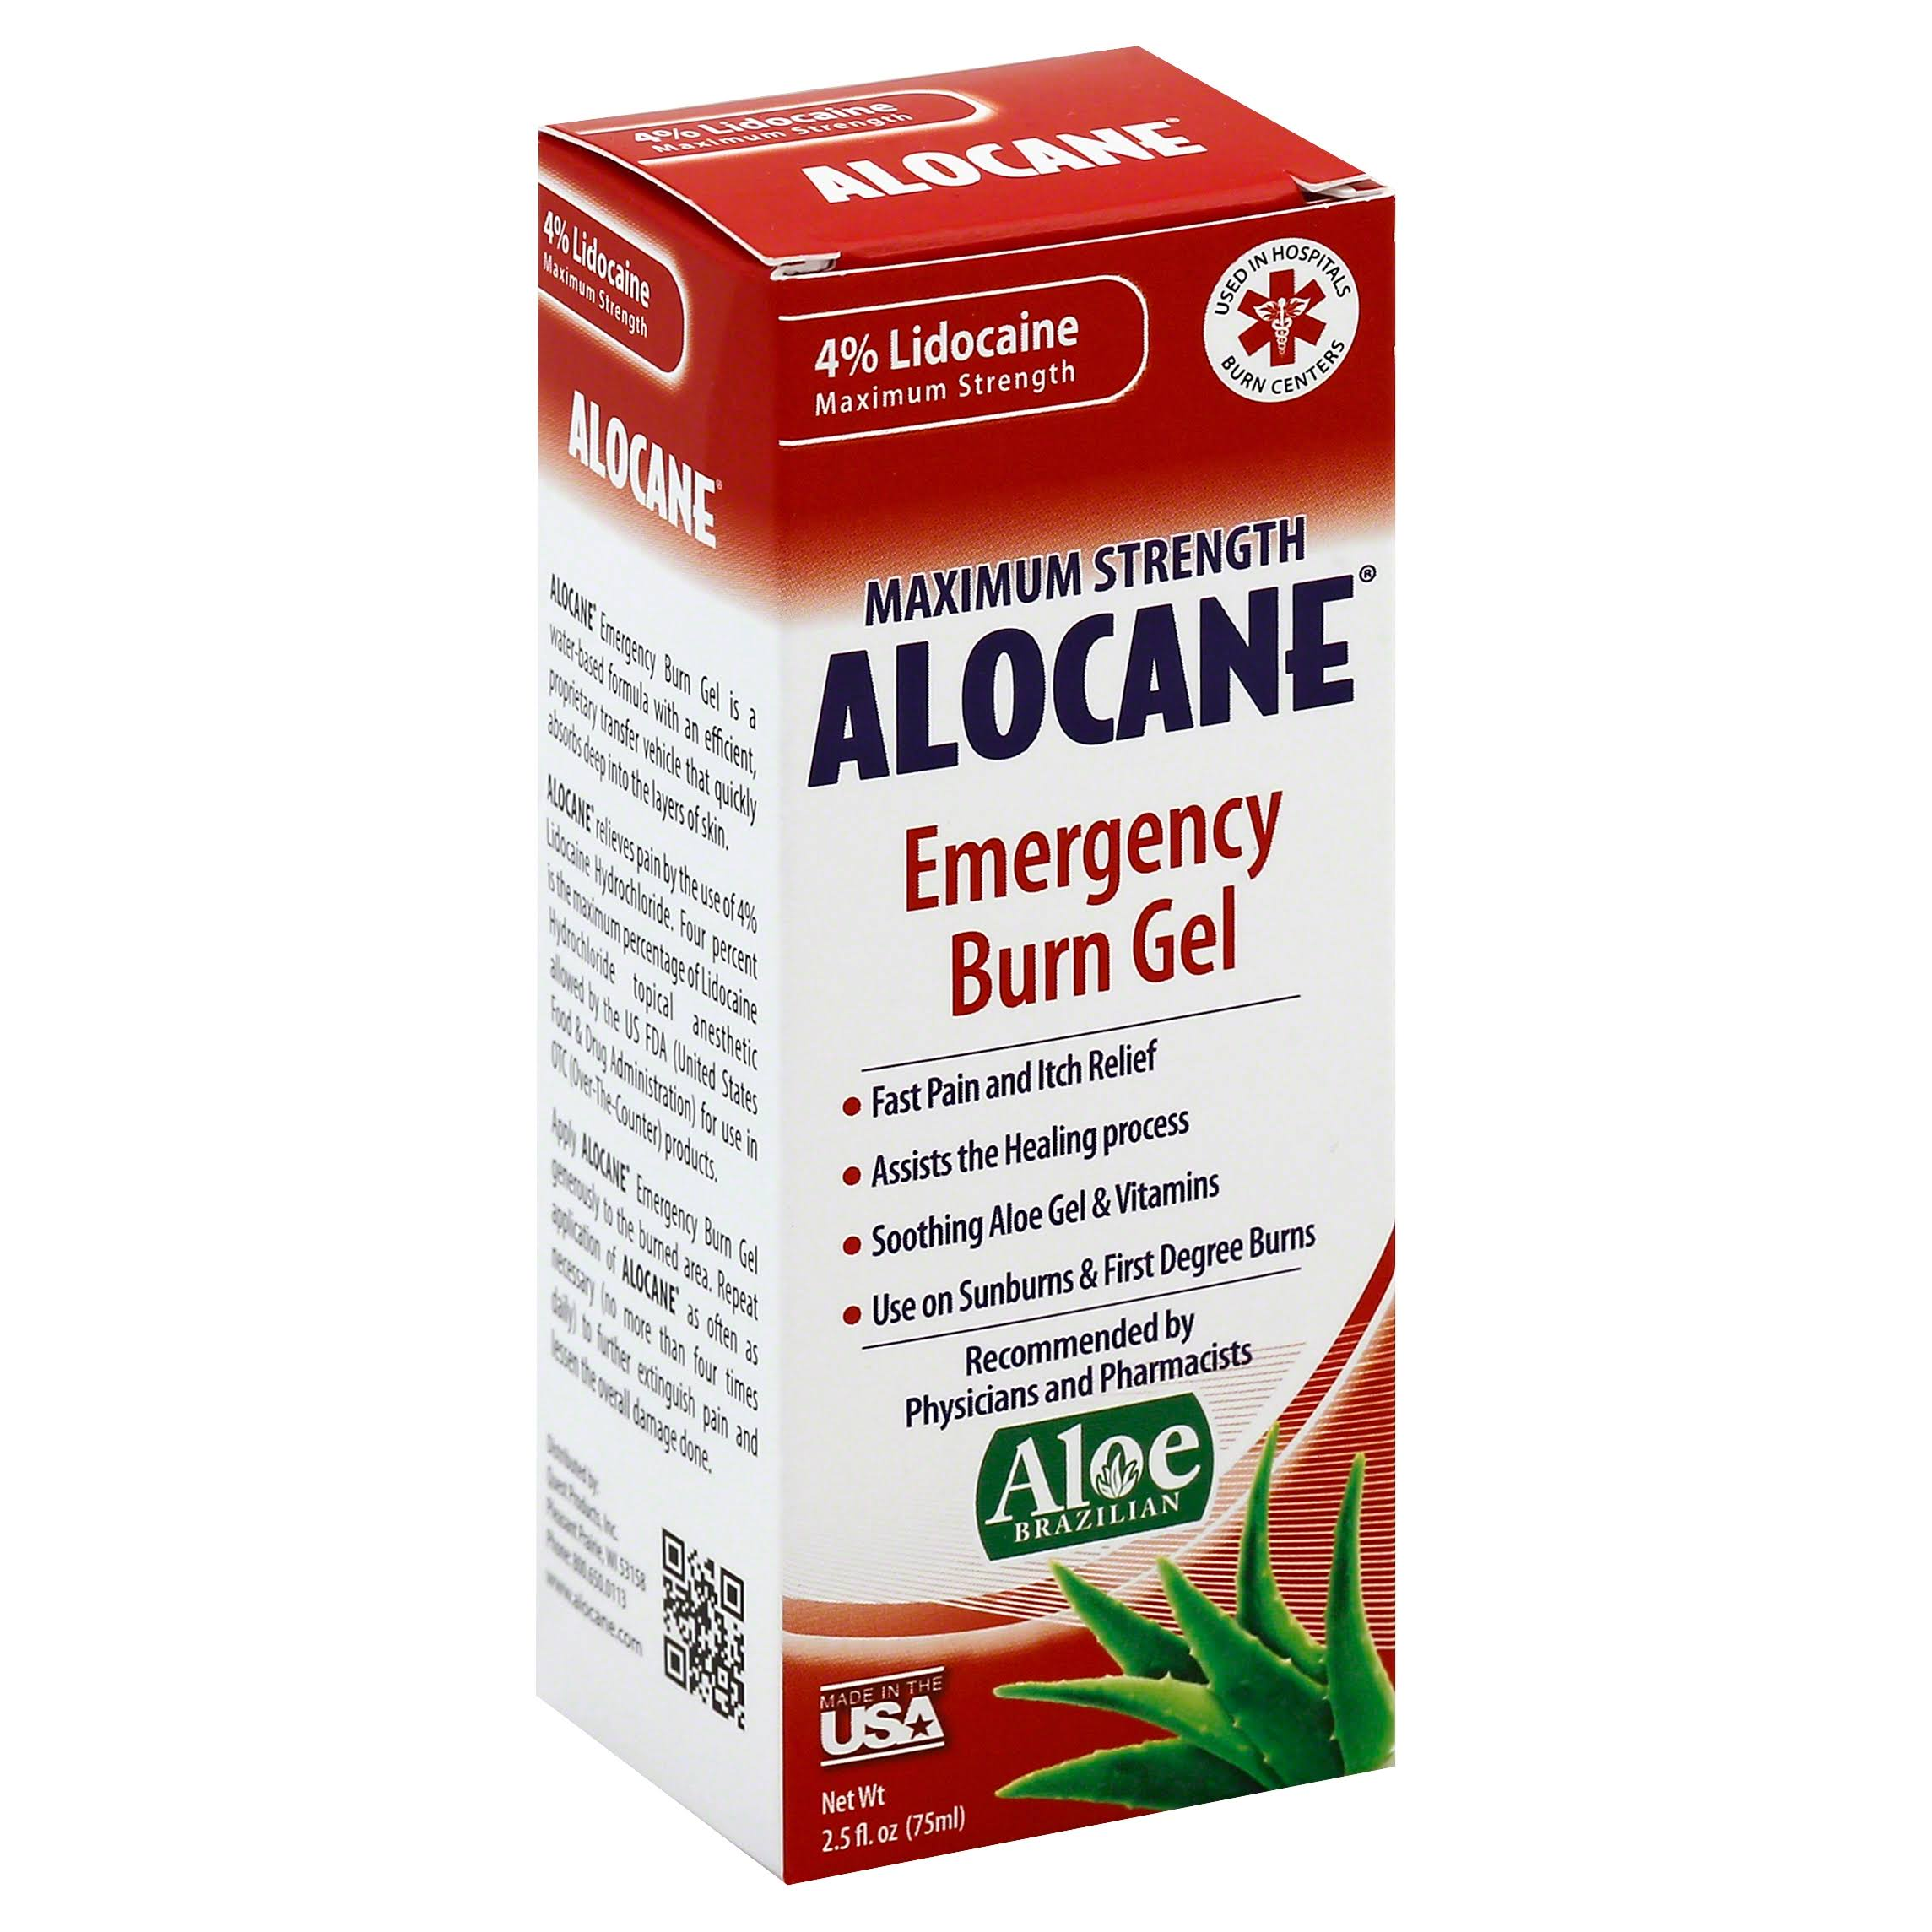 Alocane Maximum Strength Emergency Burn Gel - 2.5oz